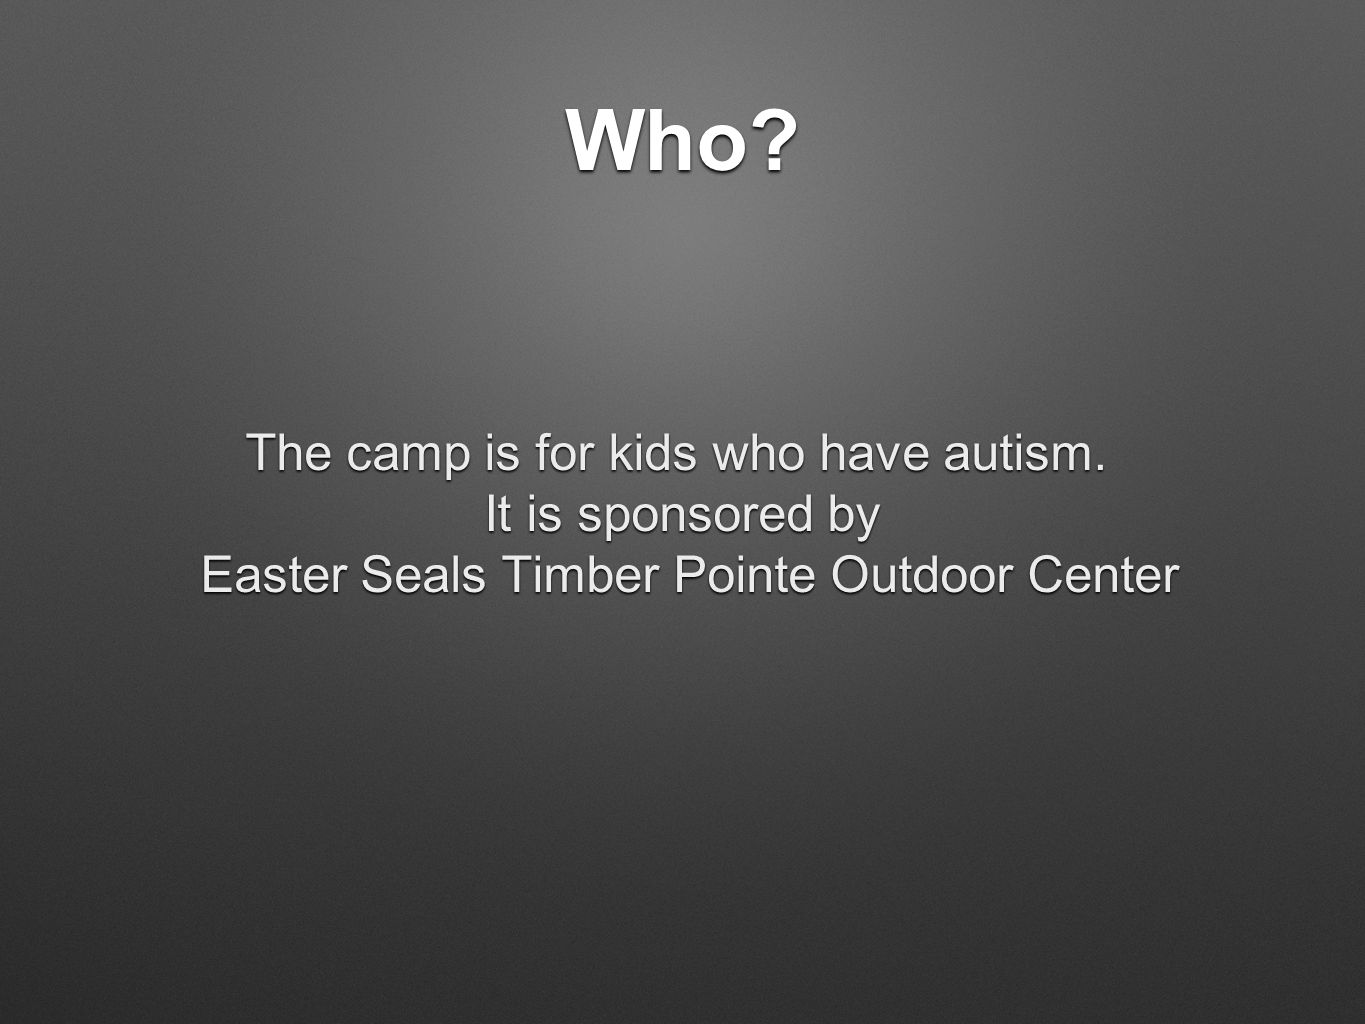 Who. The camp is for kids who have autism.